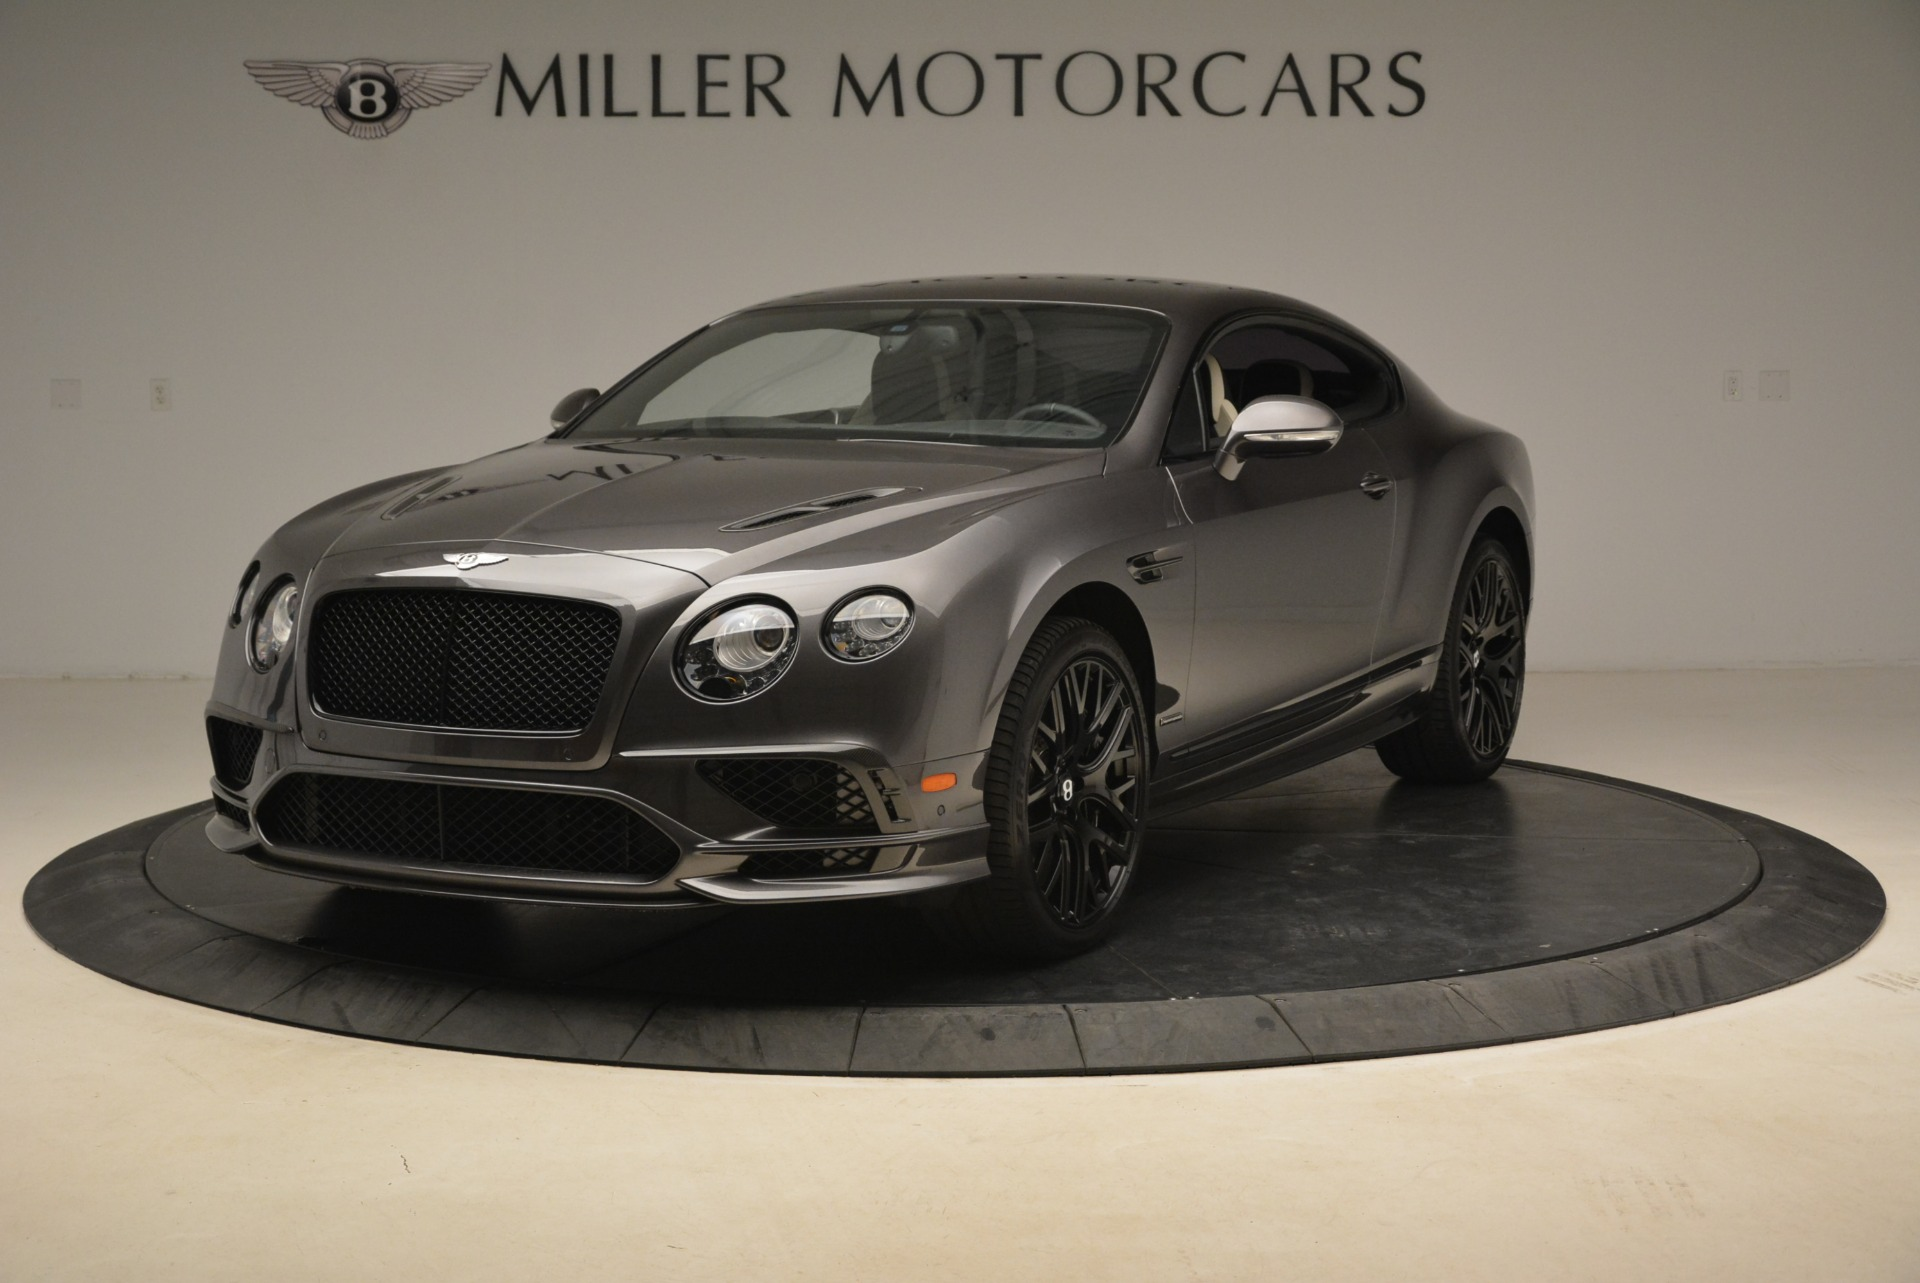 Used 2017 Bentley Continental GT Supersports for sale Sold at McLaren Greenwich in Greenwich CT 06830 1